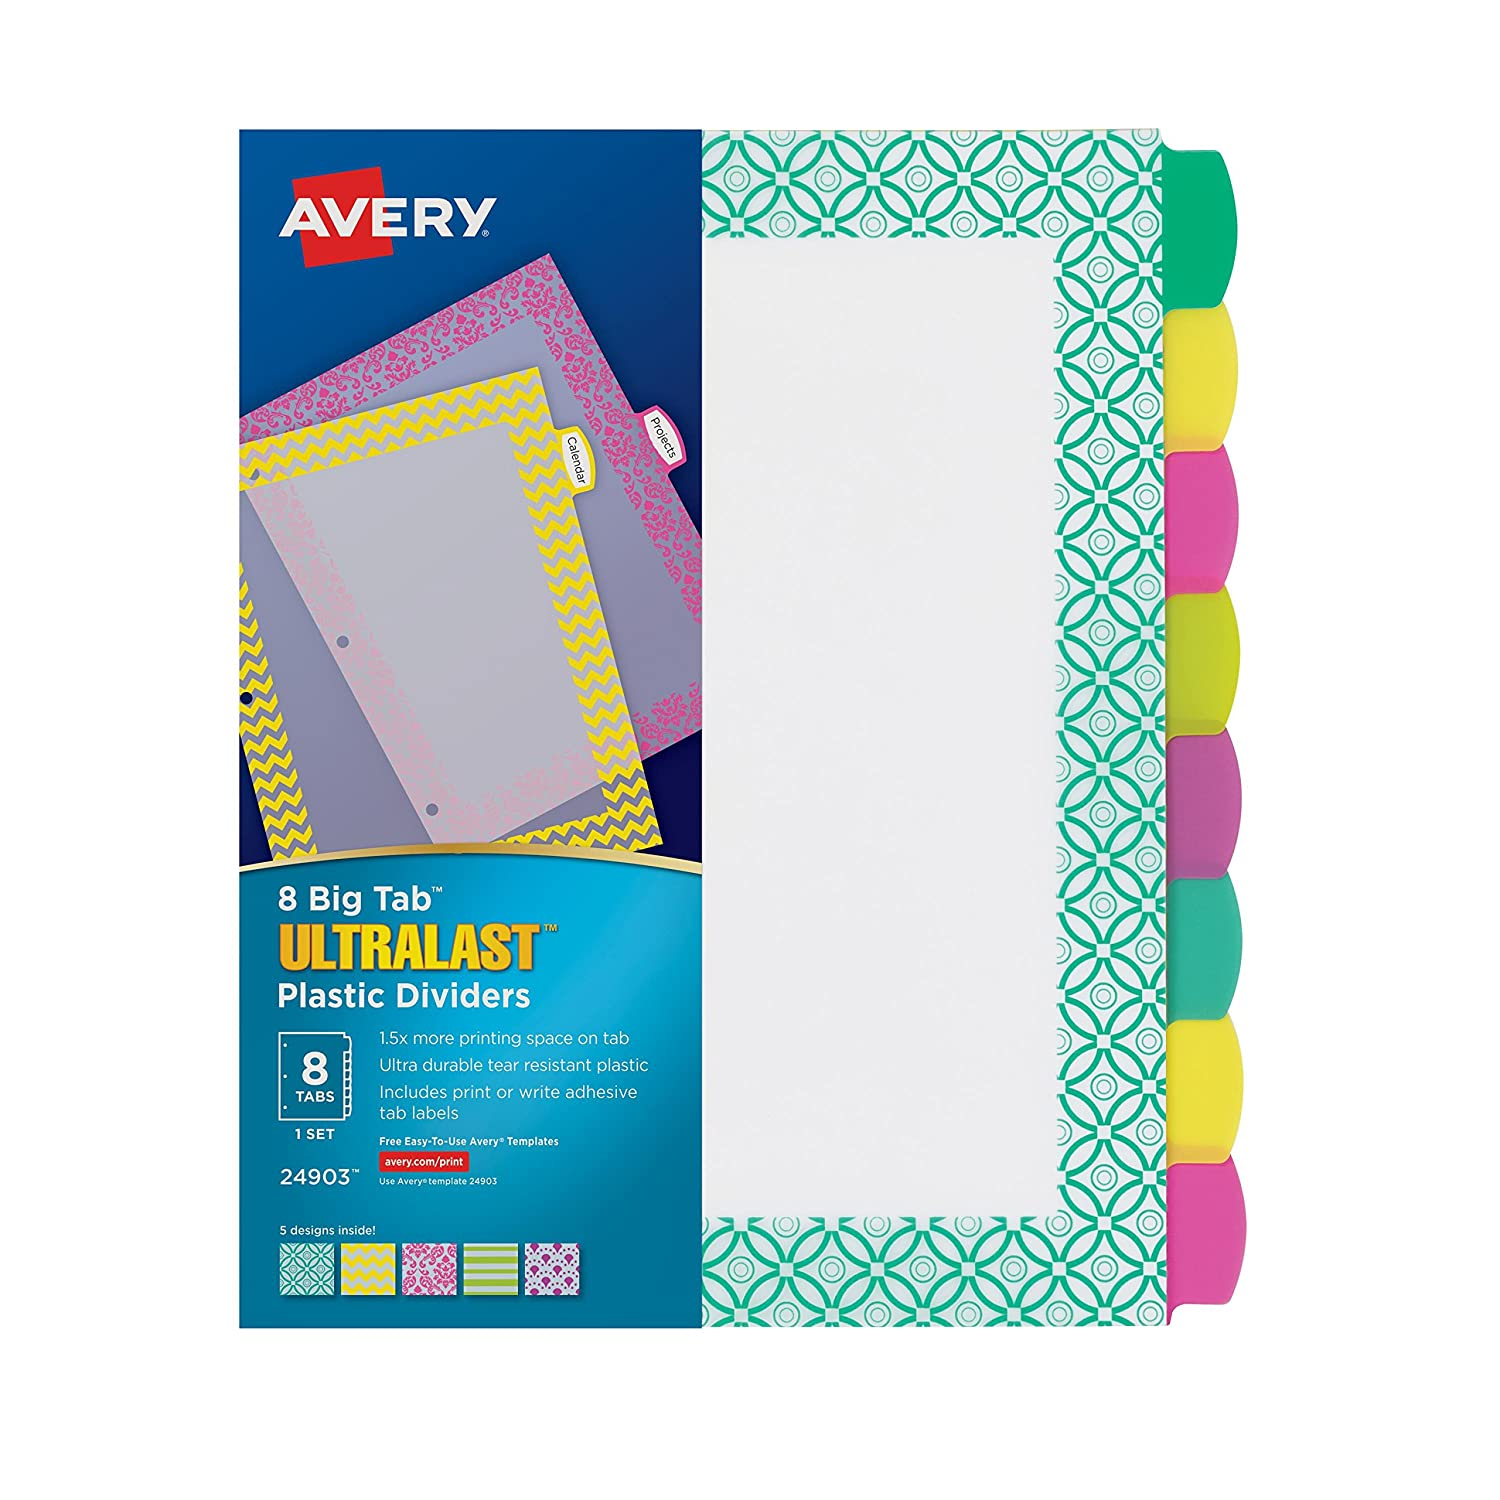 amazoncom avery ultralast big tab plastic dividers 8 tabs 1 set assorted designs 24903 office products